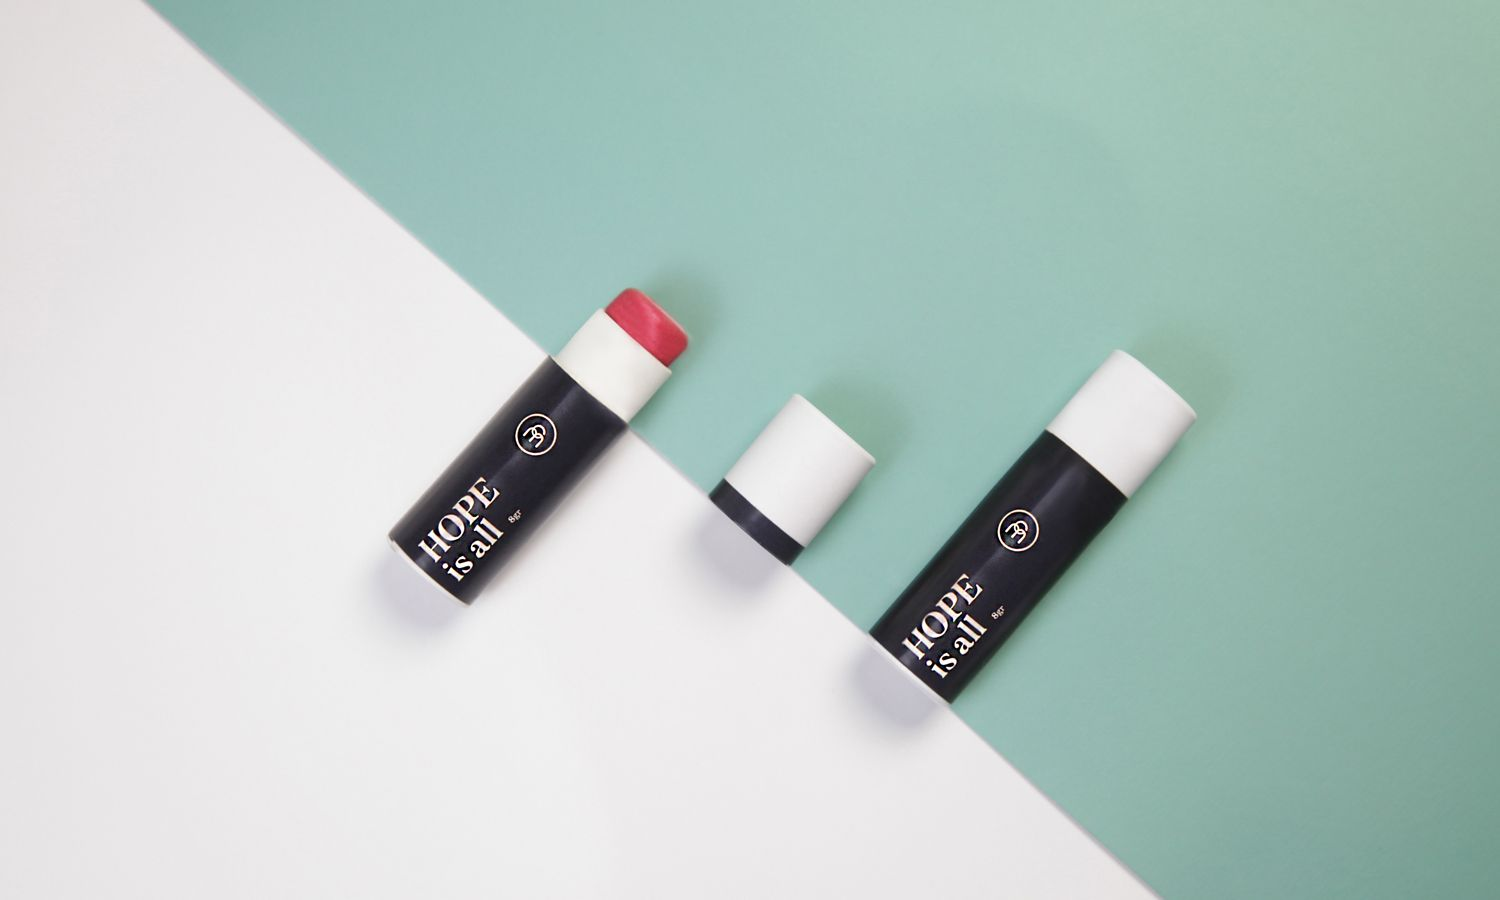 5 Hydrating Lip Balms To Try